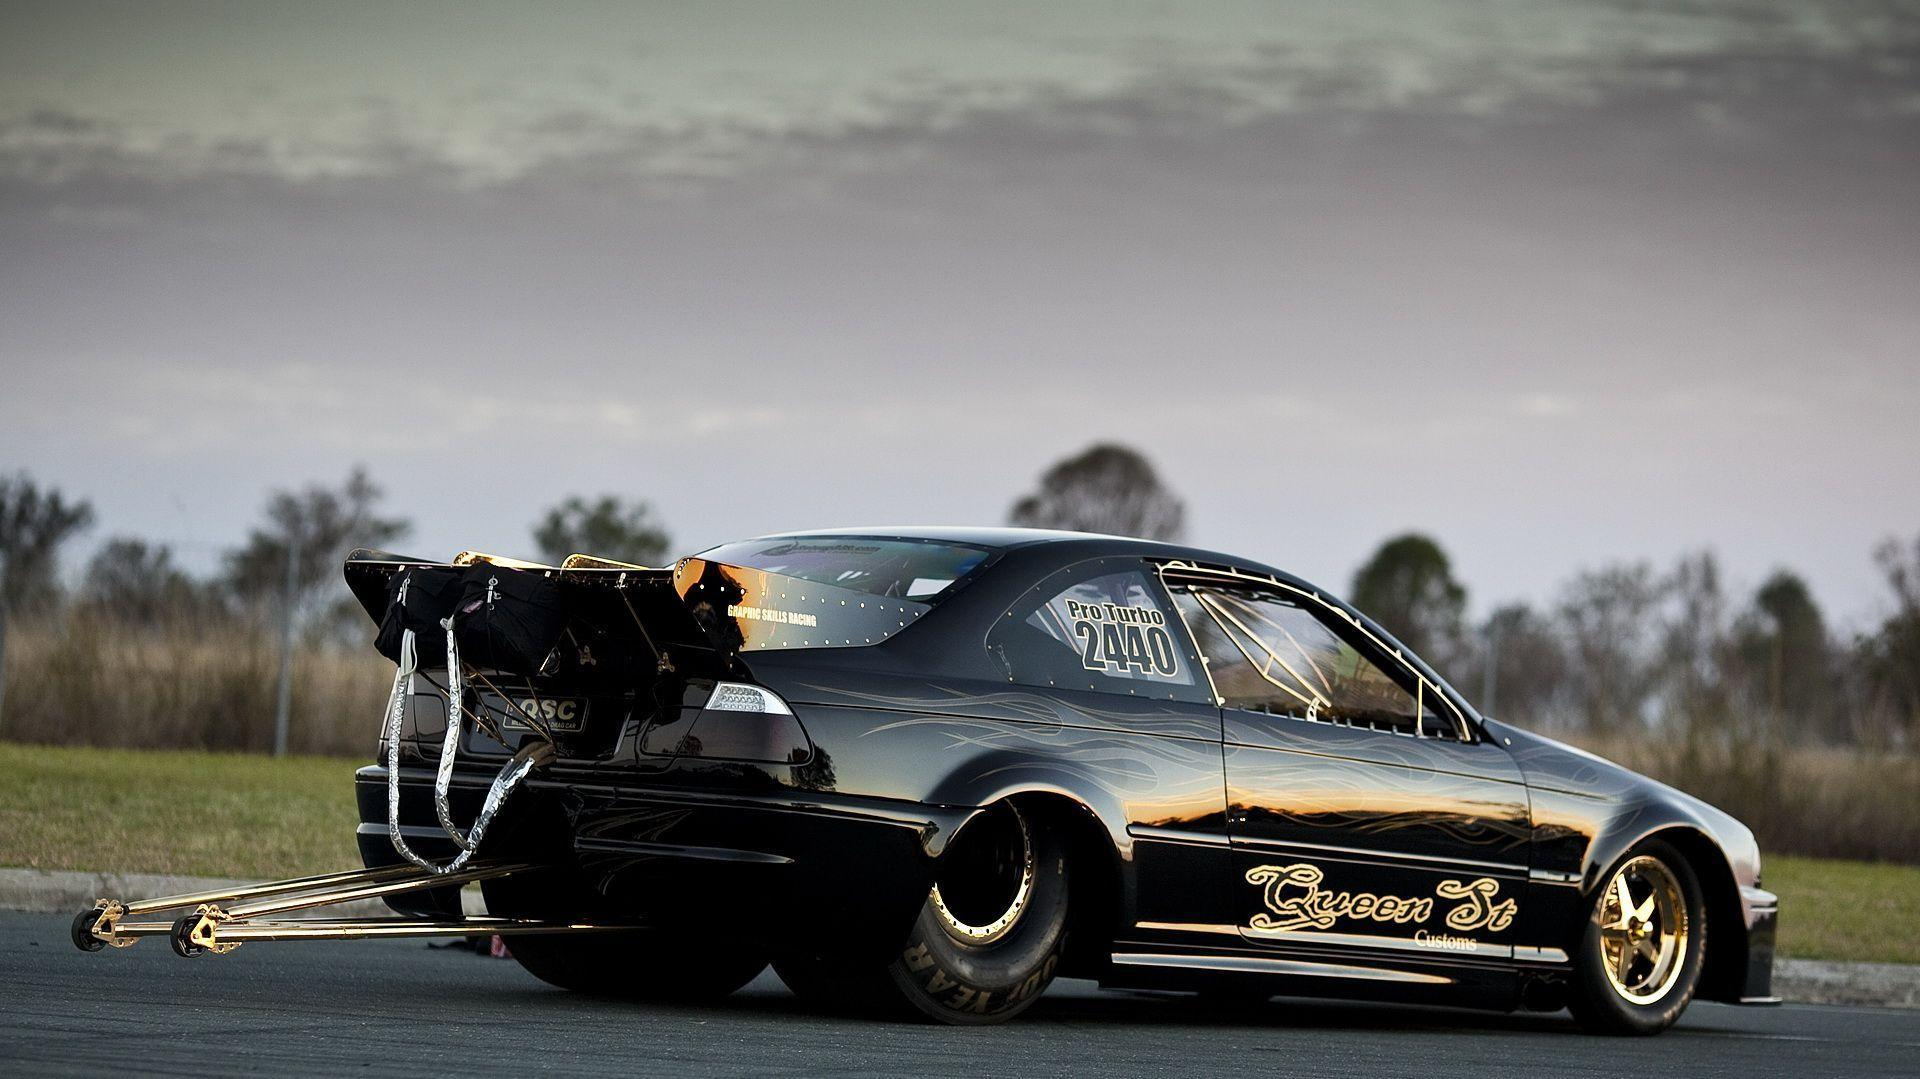 Drag Racing HD Wallpapers | HD Wallpapers 360